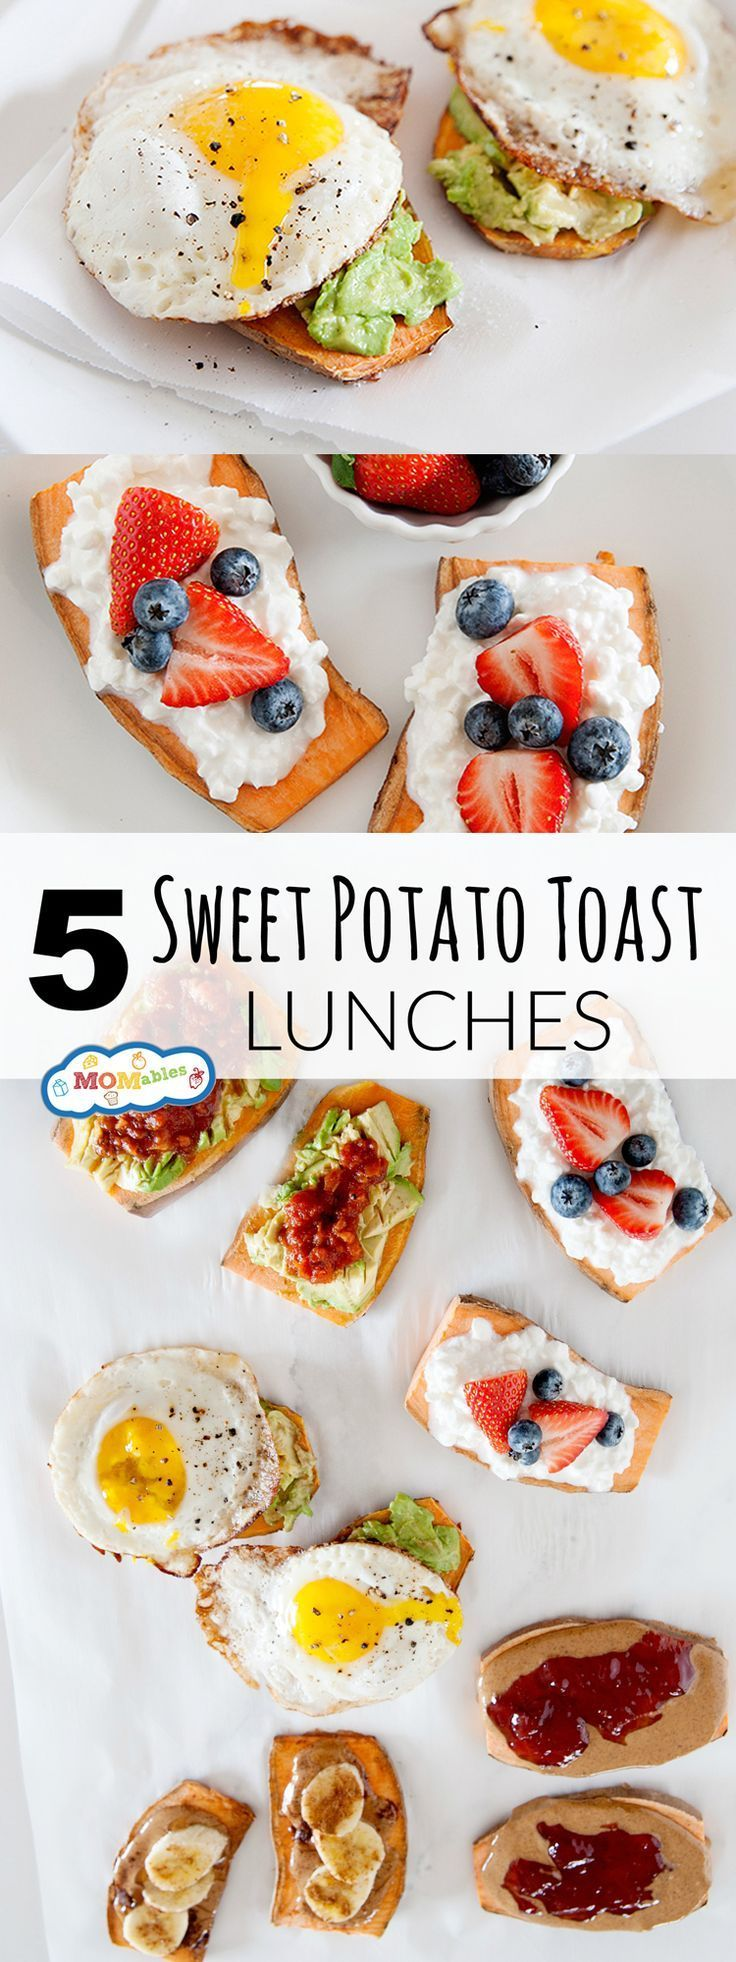 Move over daily sandwich because these sweet potato toast lunches are the next hot thing! #glutenfree #sweetpotatotoast